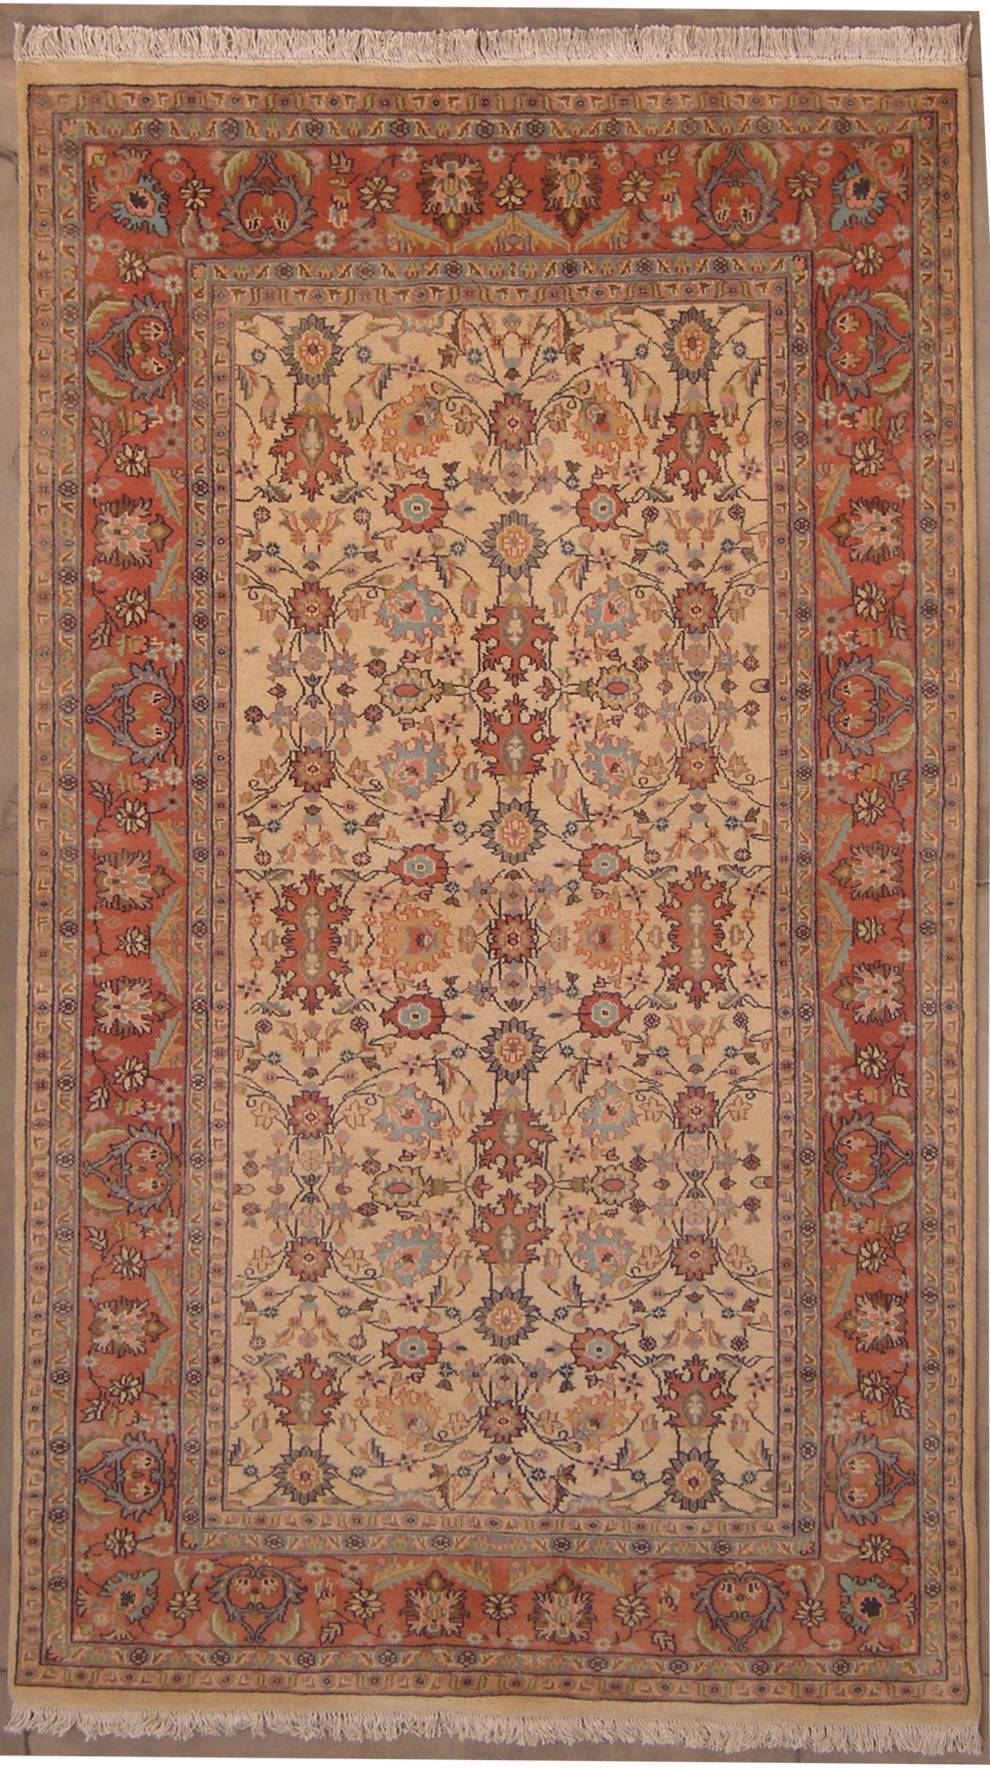 RugsTC 4'11 x 8'2 Double Knott Pak Persian Mahal  Authentic Hand Knotted Area Rug with Wool Pile - 5x8 Medium Rug at Sears.com